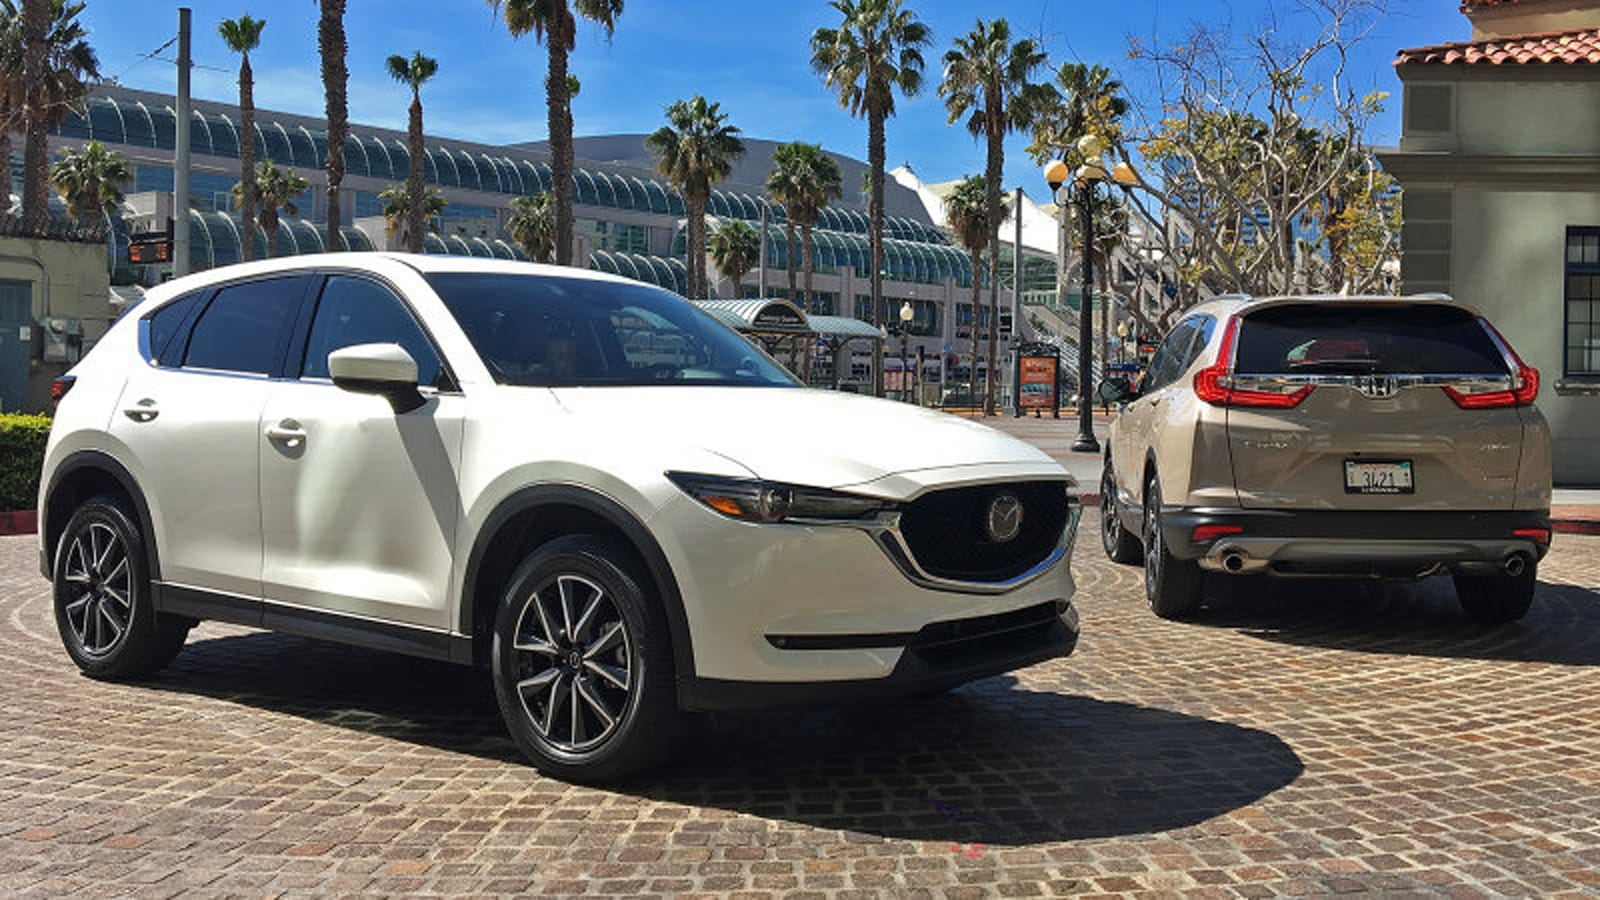 2021 Mazda Cx 5 Review Prices Specs Features And Photos Today News Post